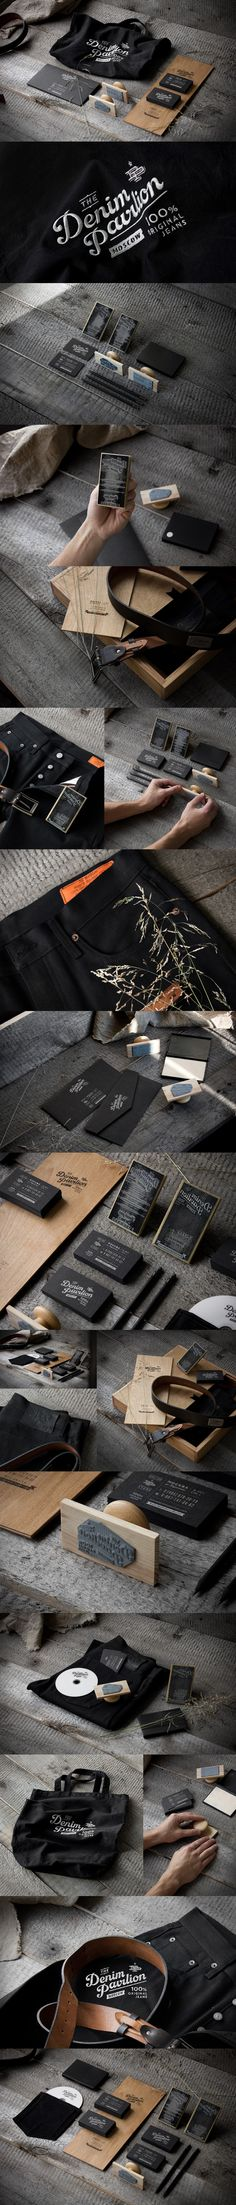 The Denim Pavilion packaging branding marketing PD